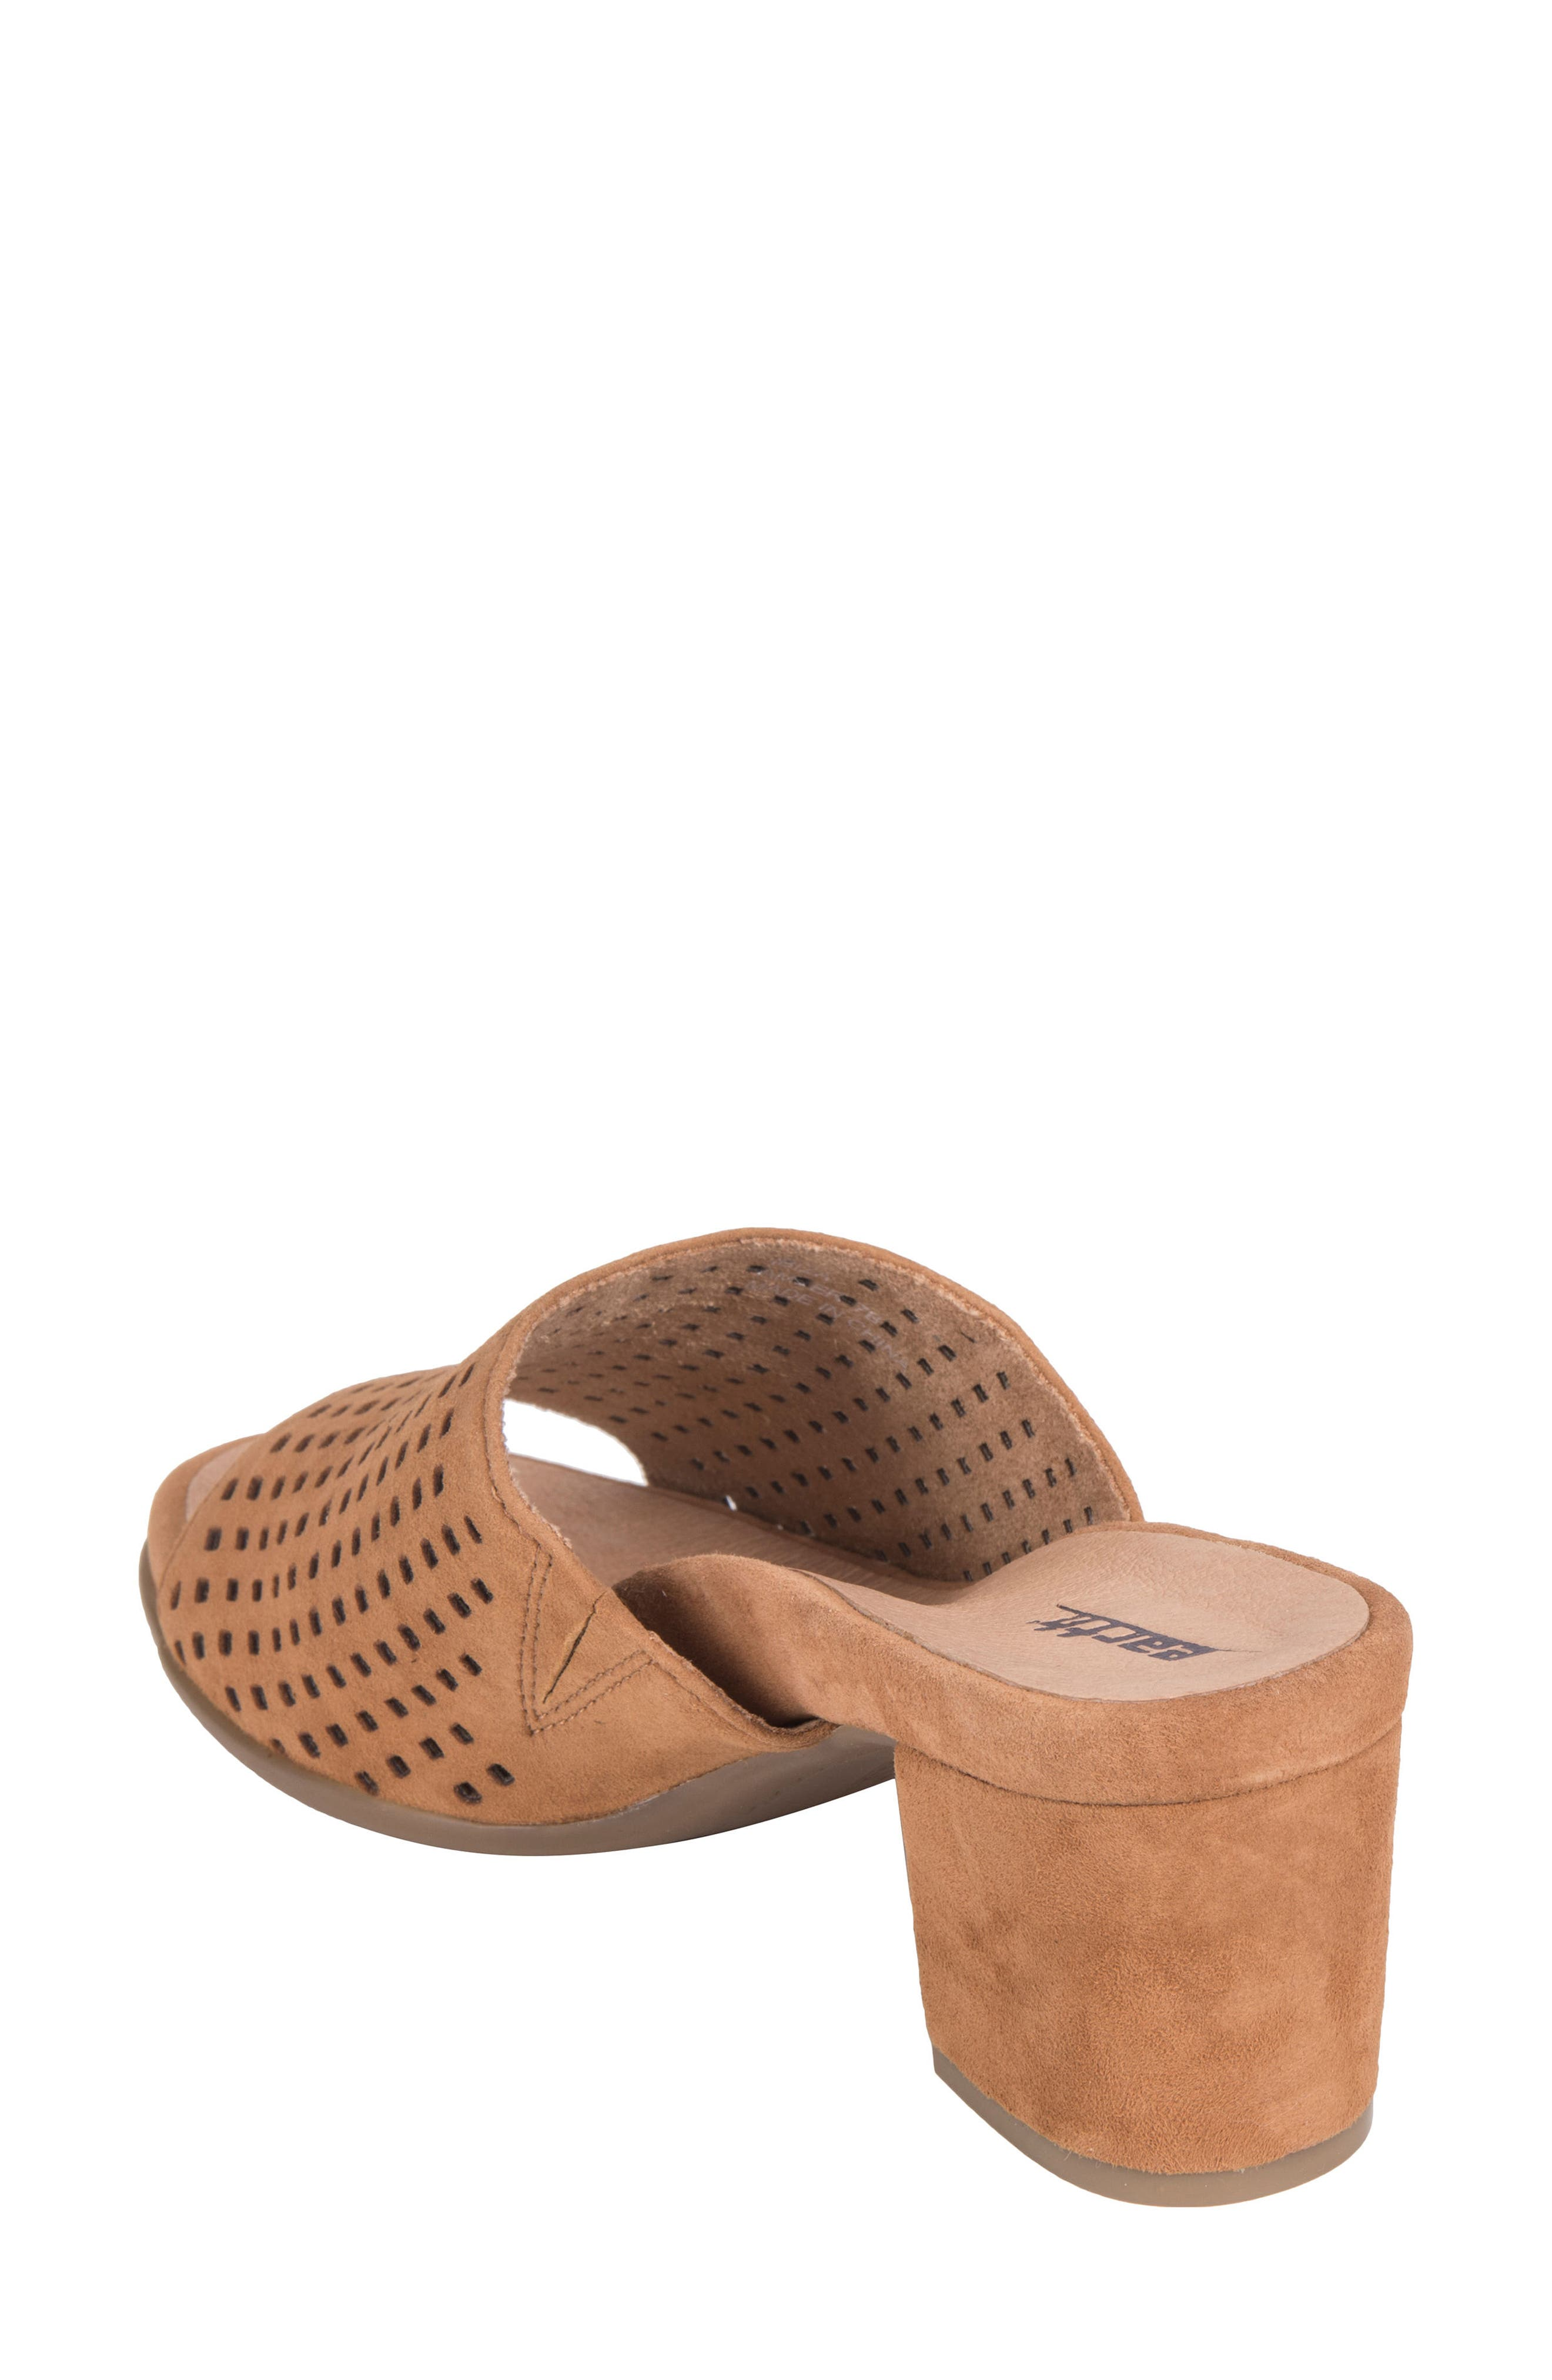 Ibiza Perforated Sandal,                             Alternate thumbnail 2, color,                             Amber Suede